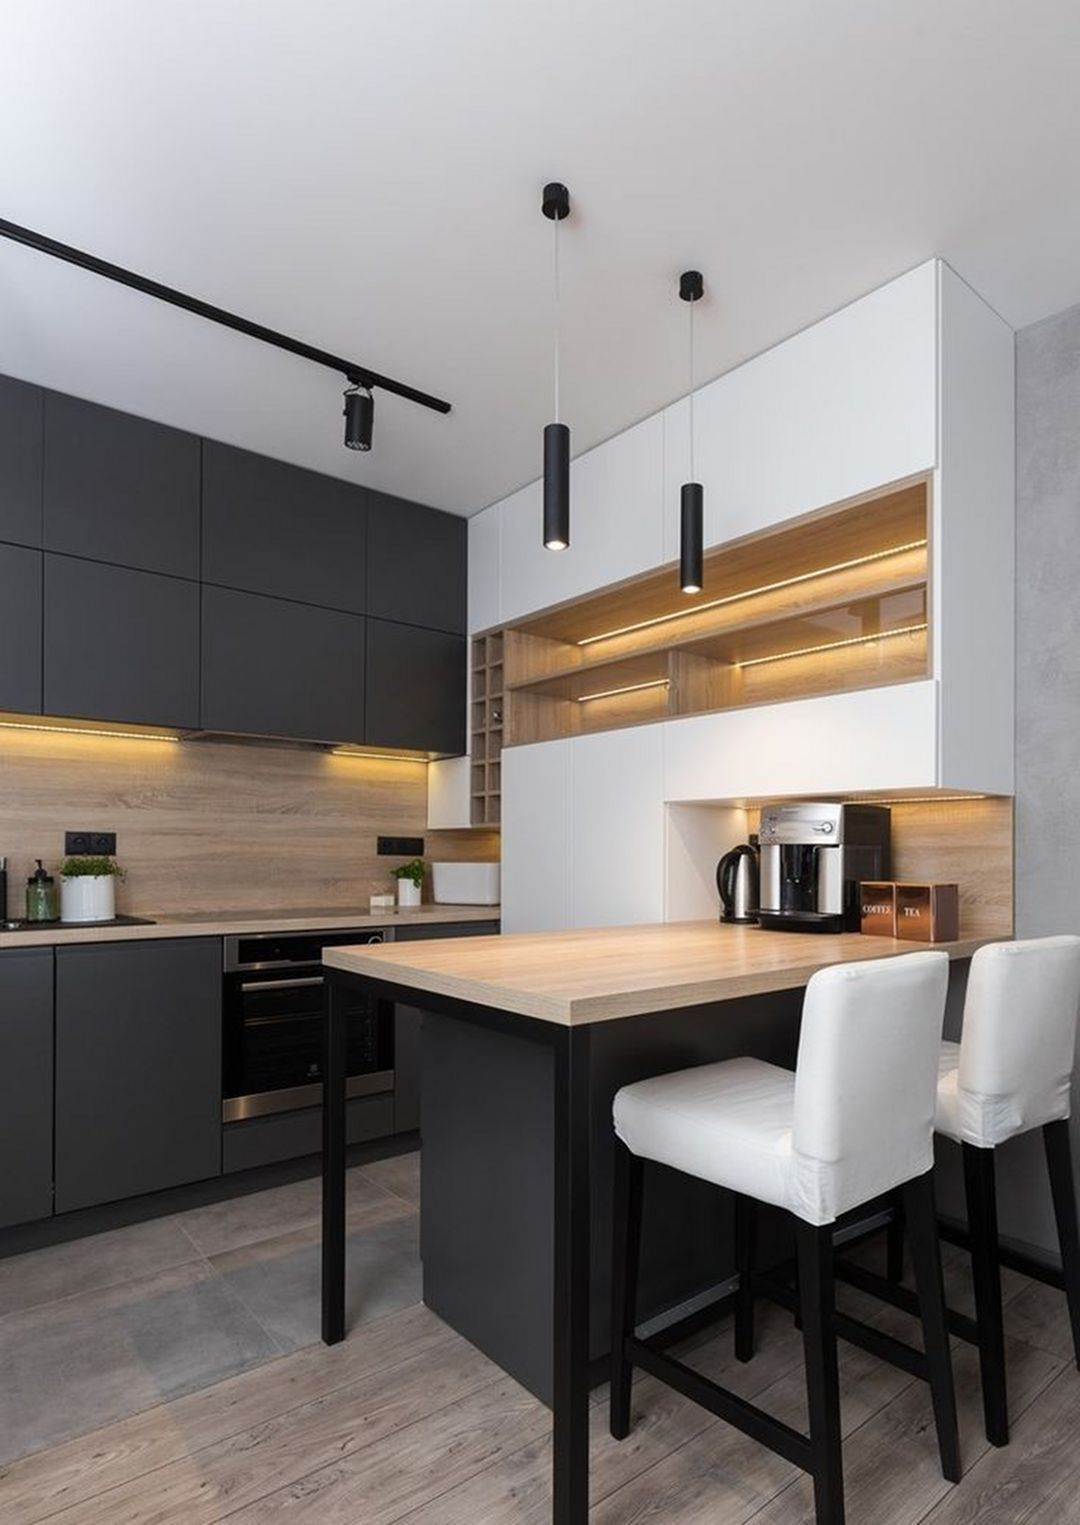 20 Magnificient Kitchen Design Ideas That You Can Try On Your Dream Home In 2020 Simple Kitchen Design Kitchen Remodel Small Modern Kitchen Interiors